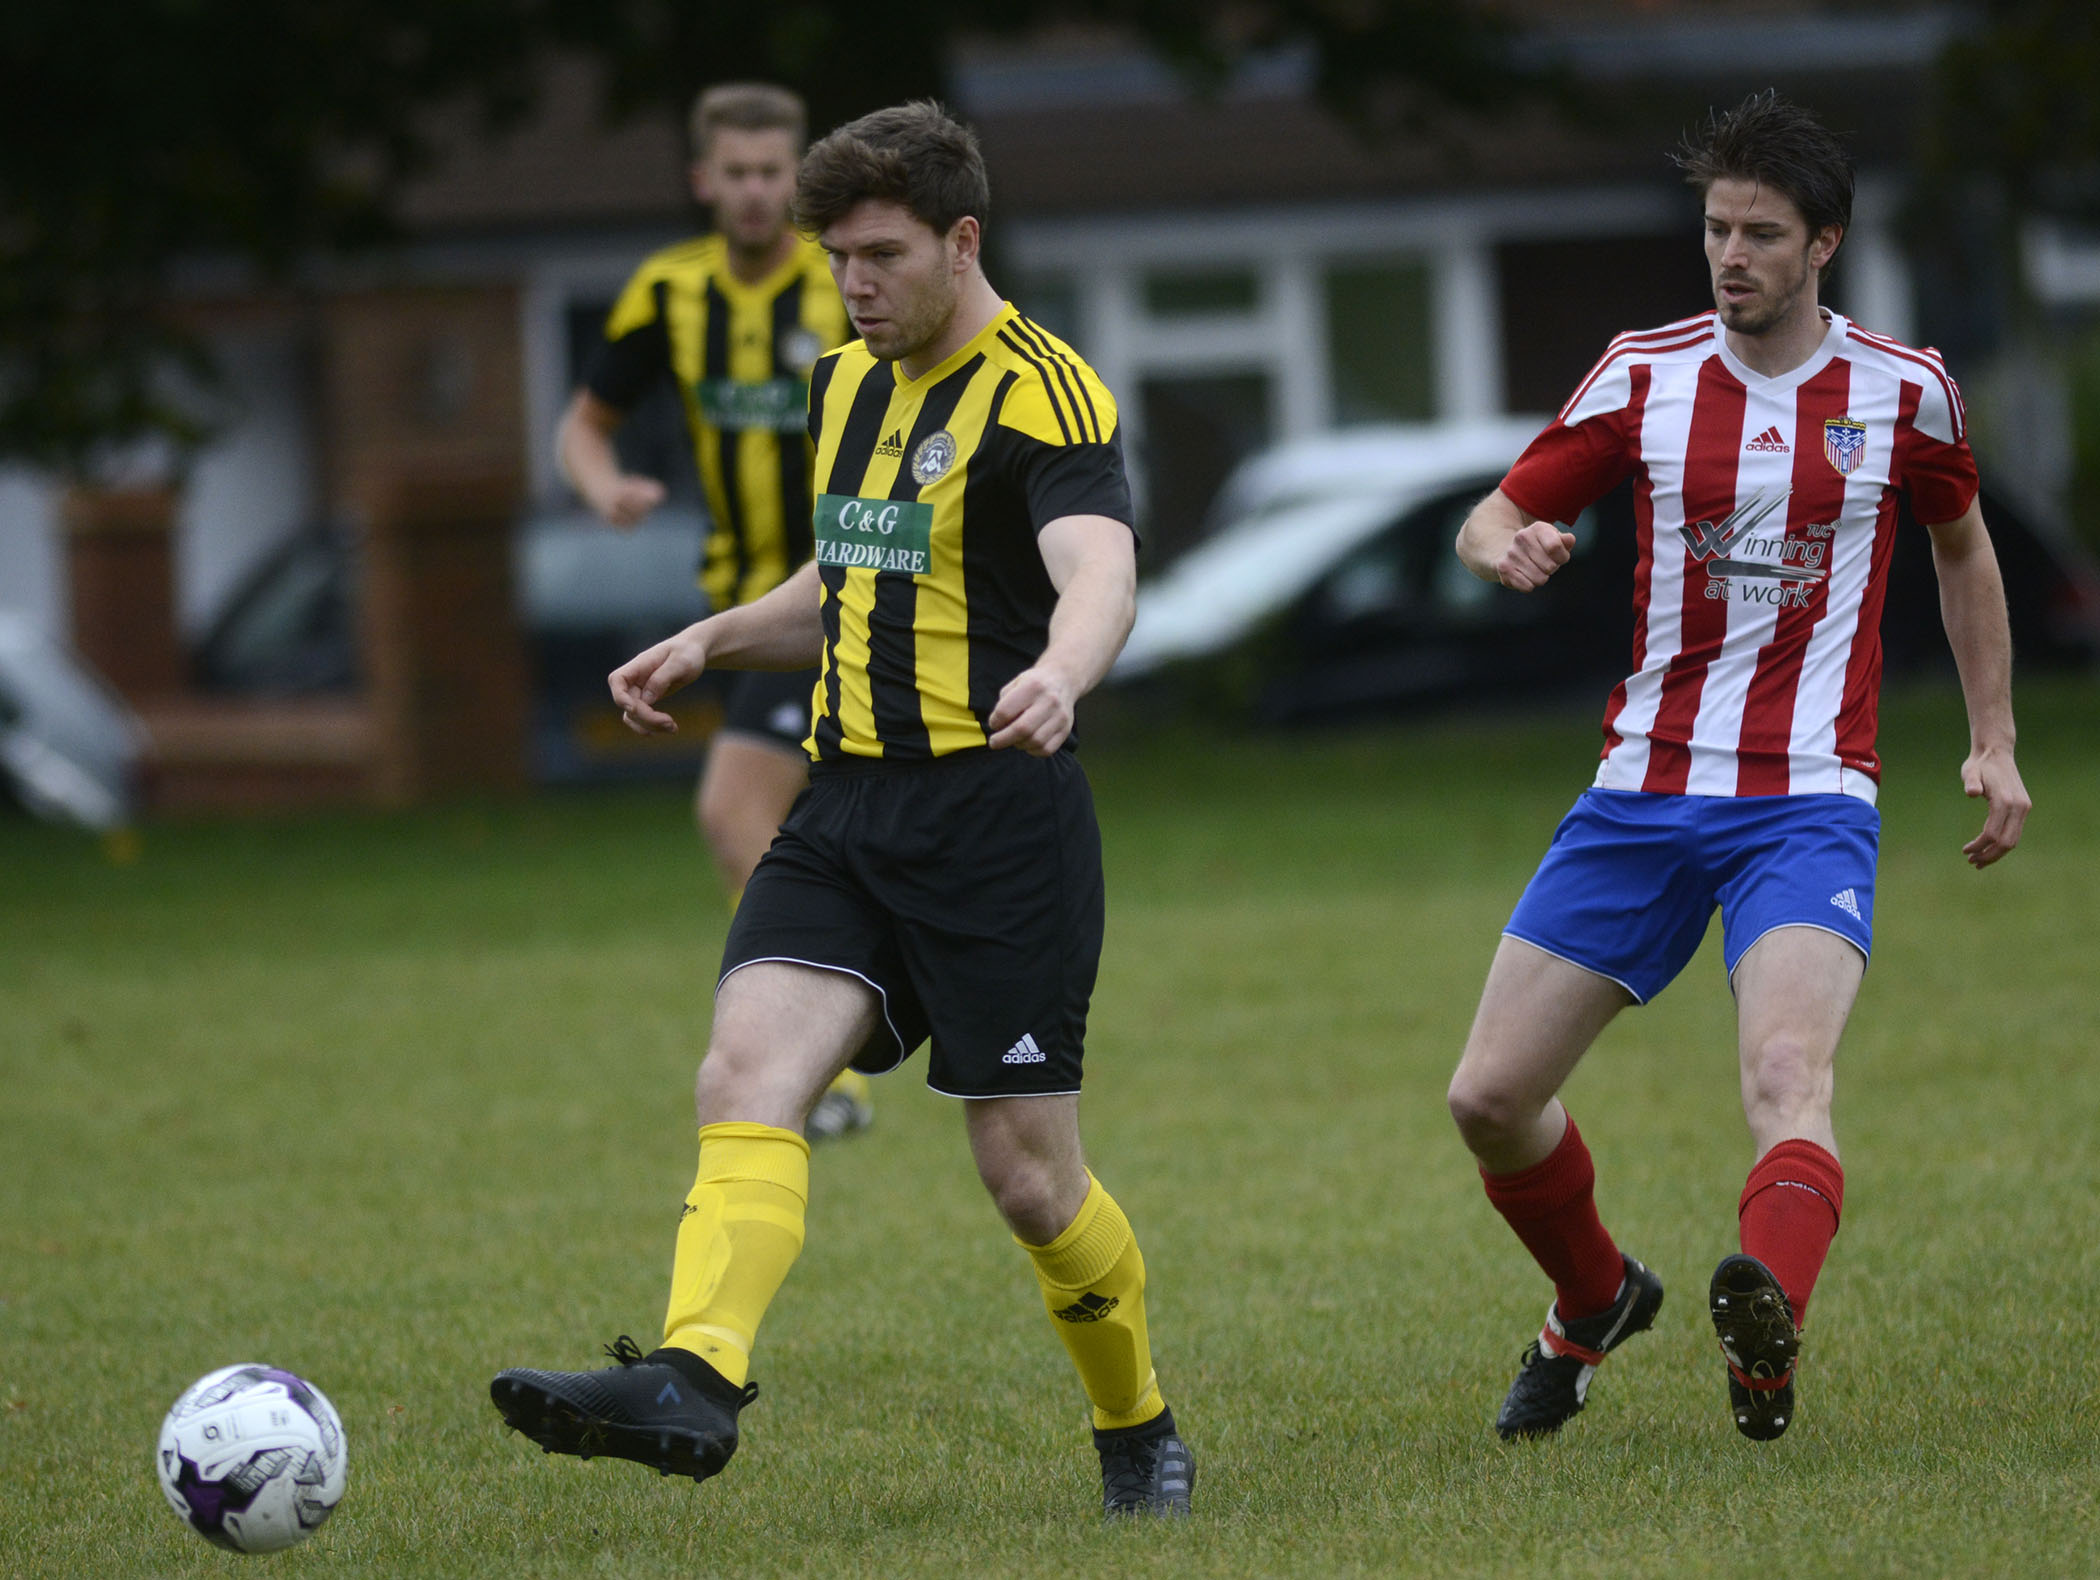 Action from Athletico Forest's (red/white) 3-2 win against Tilehurst YM